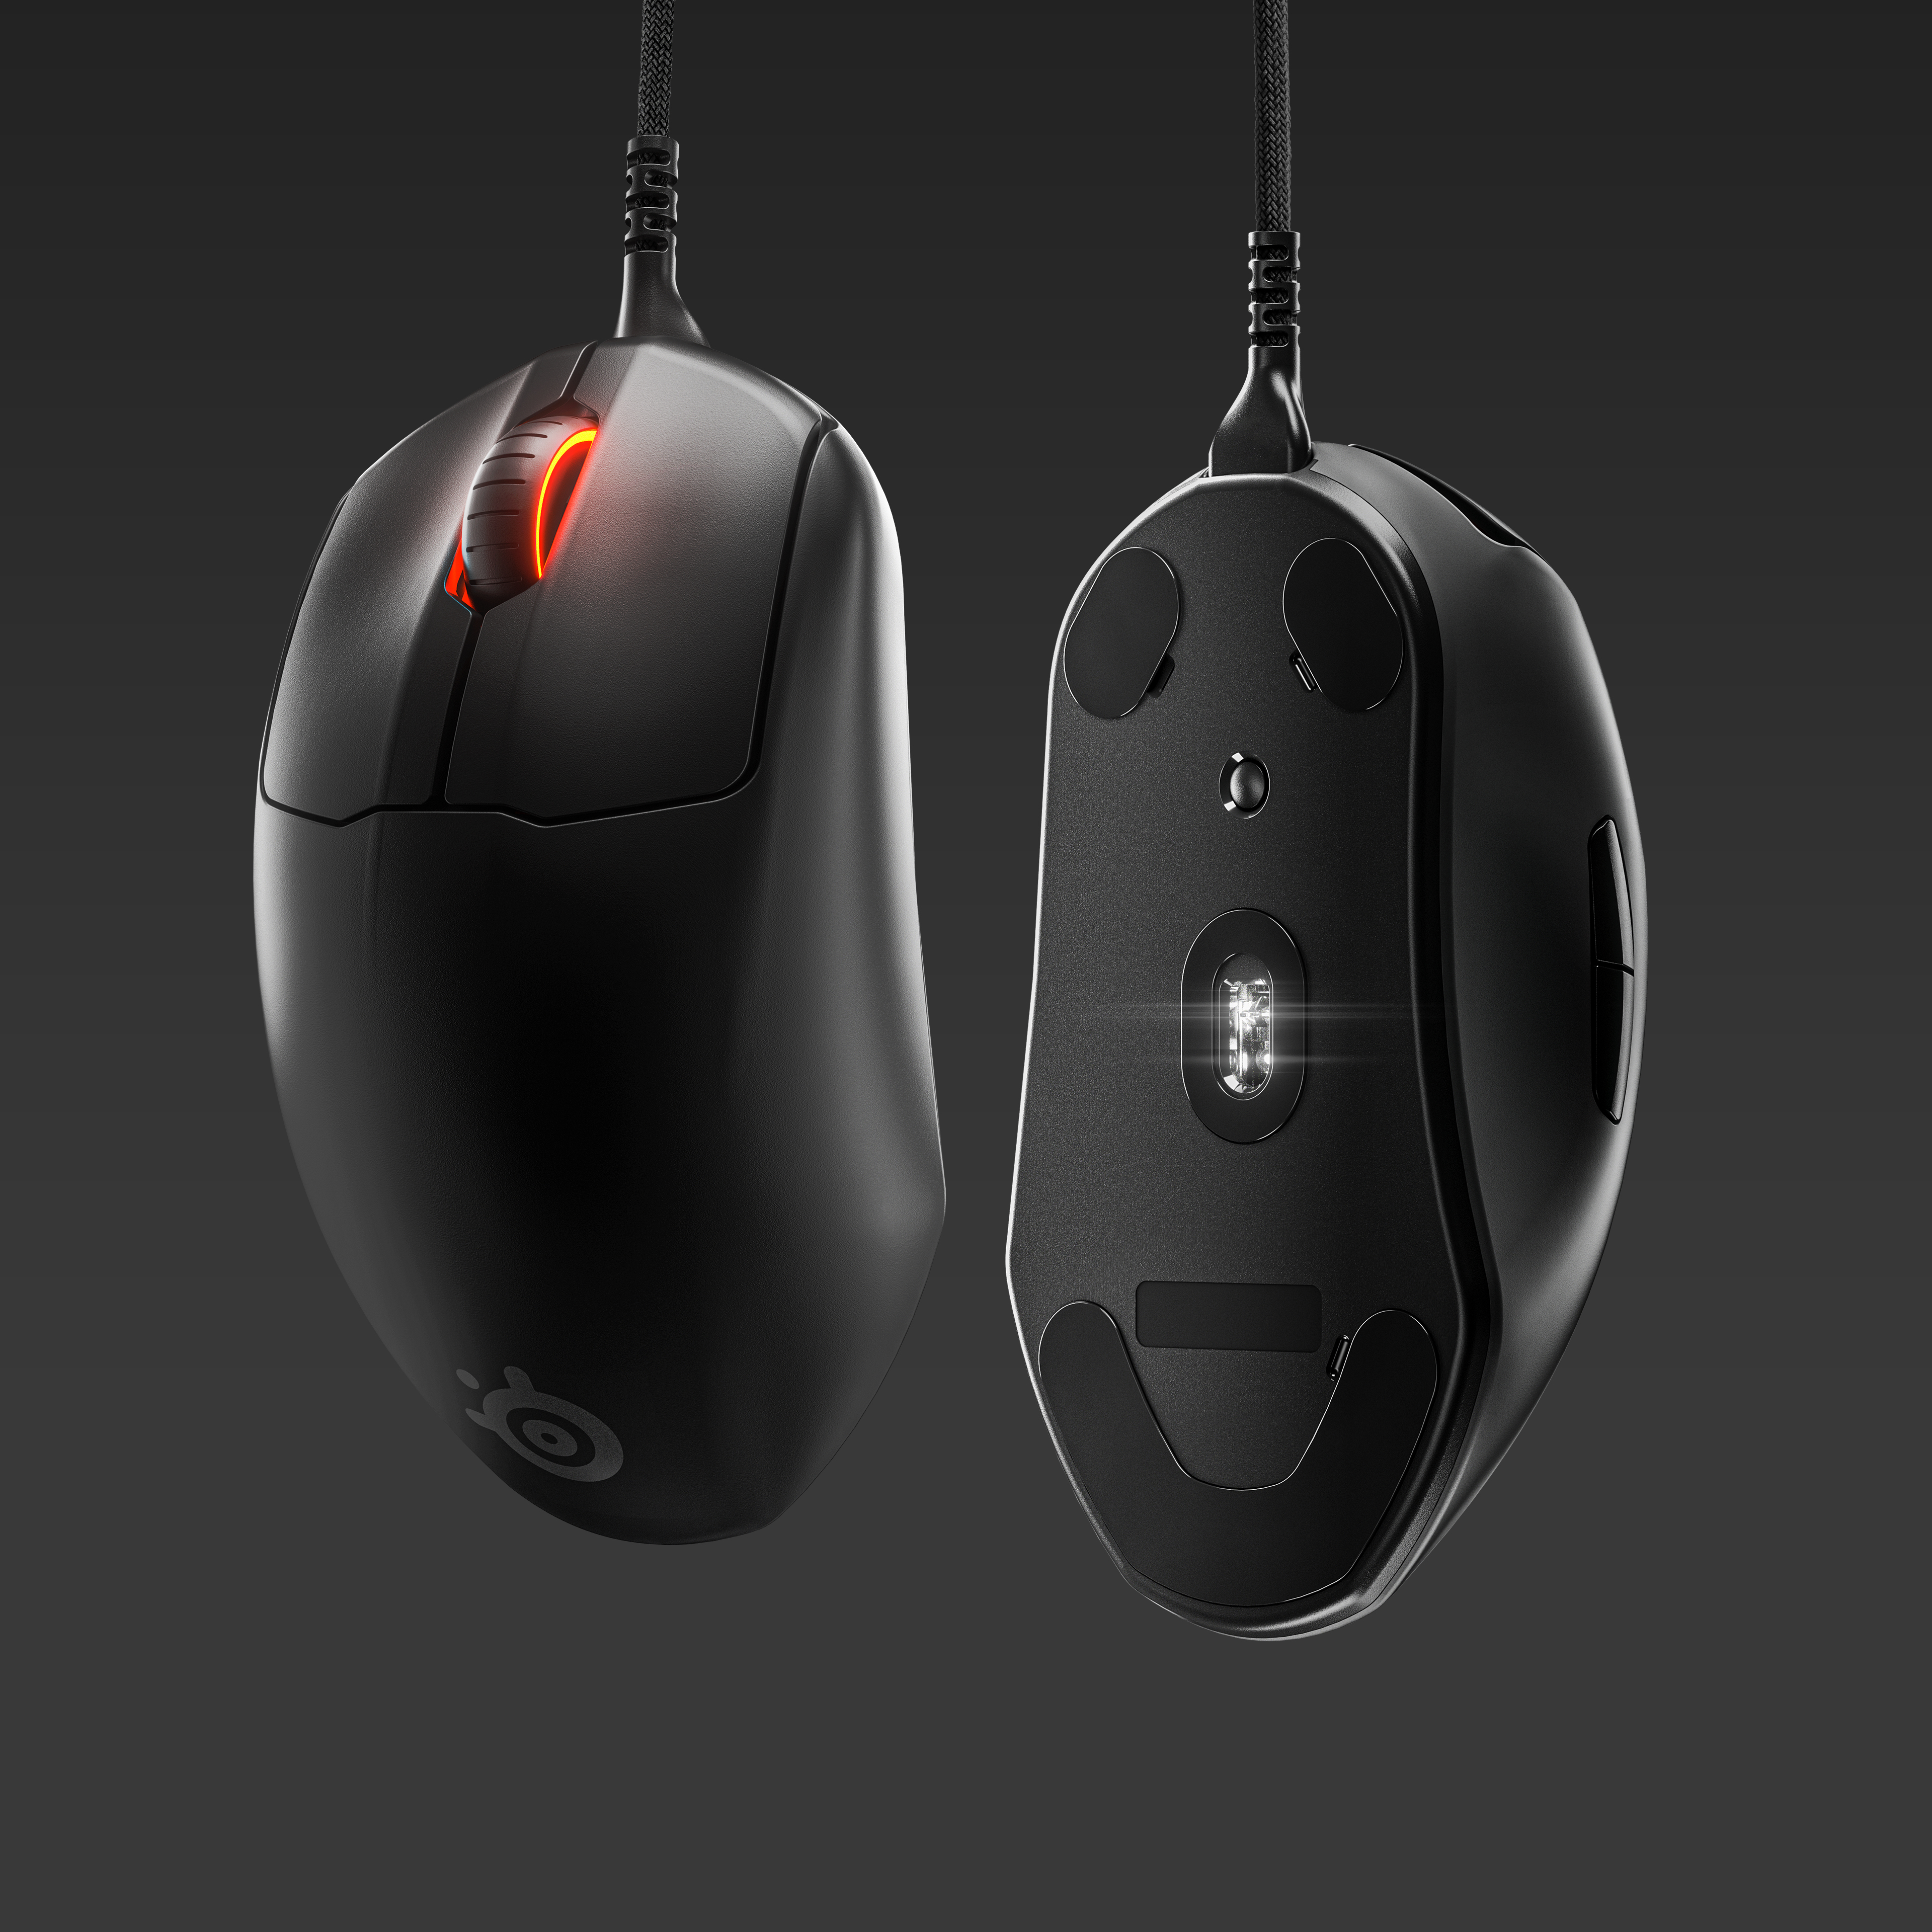 The Prime gaming mouse.